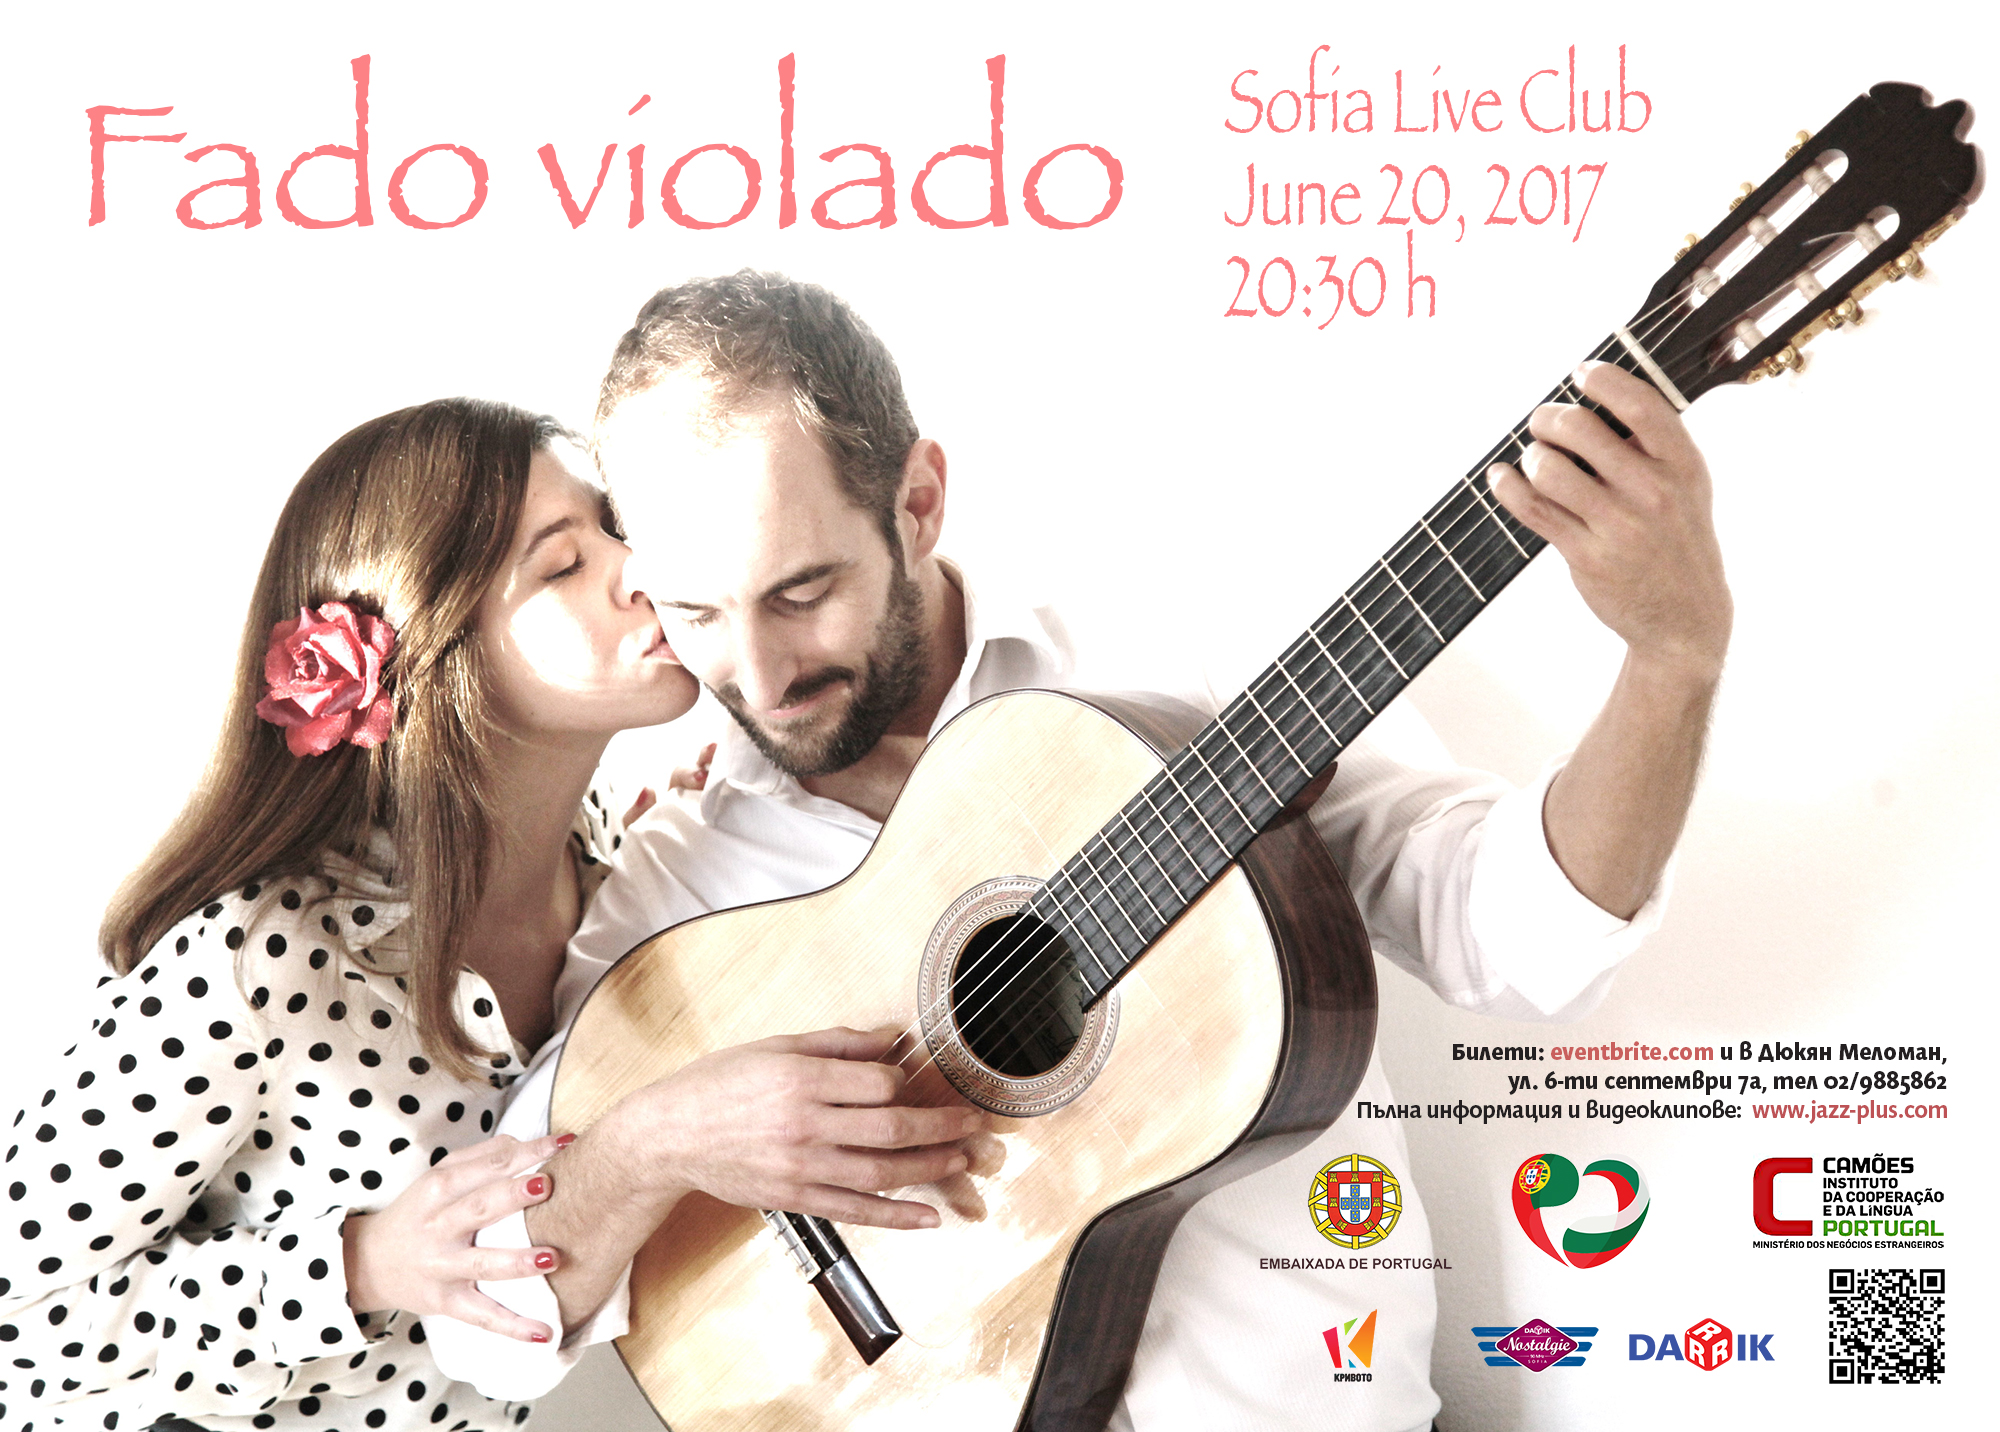 Fado Violado - Sofia Live Club, June 20, 2017 18